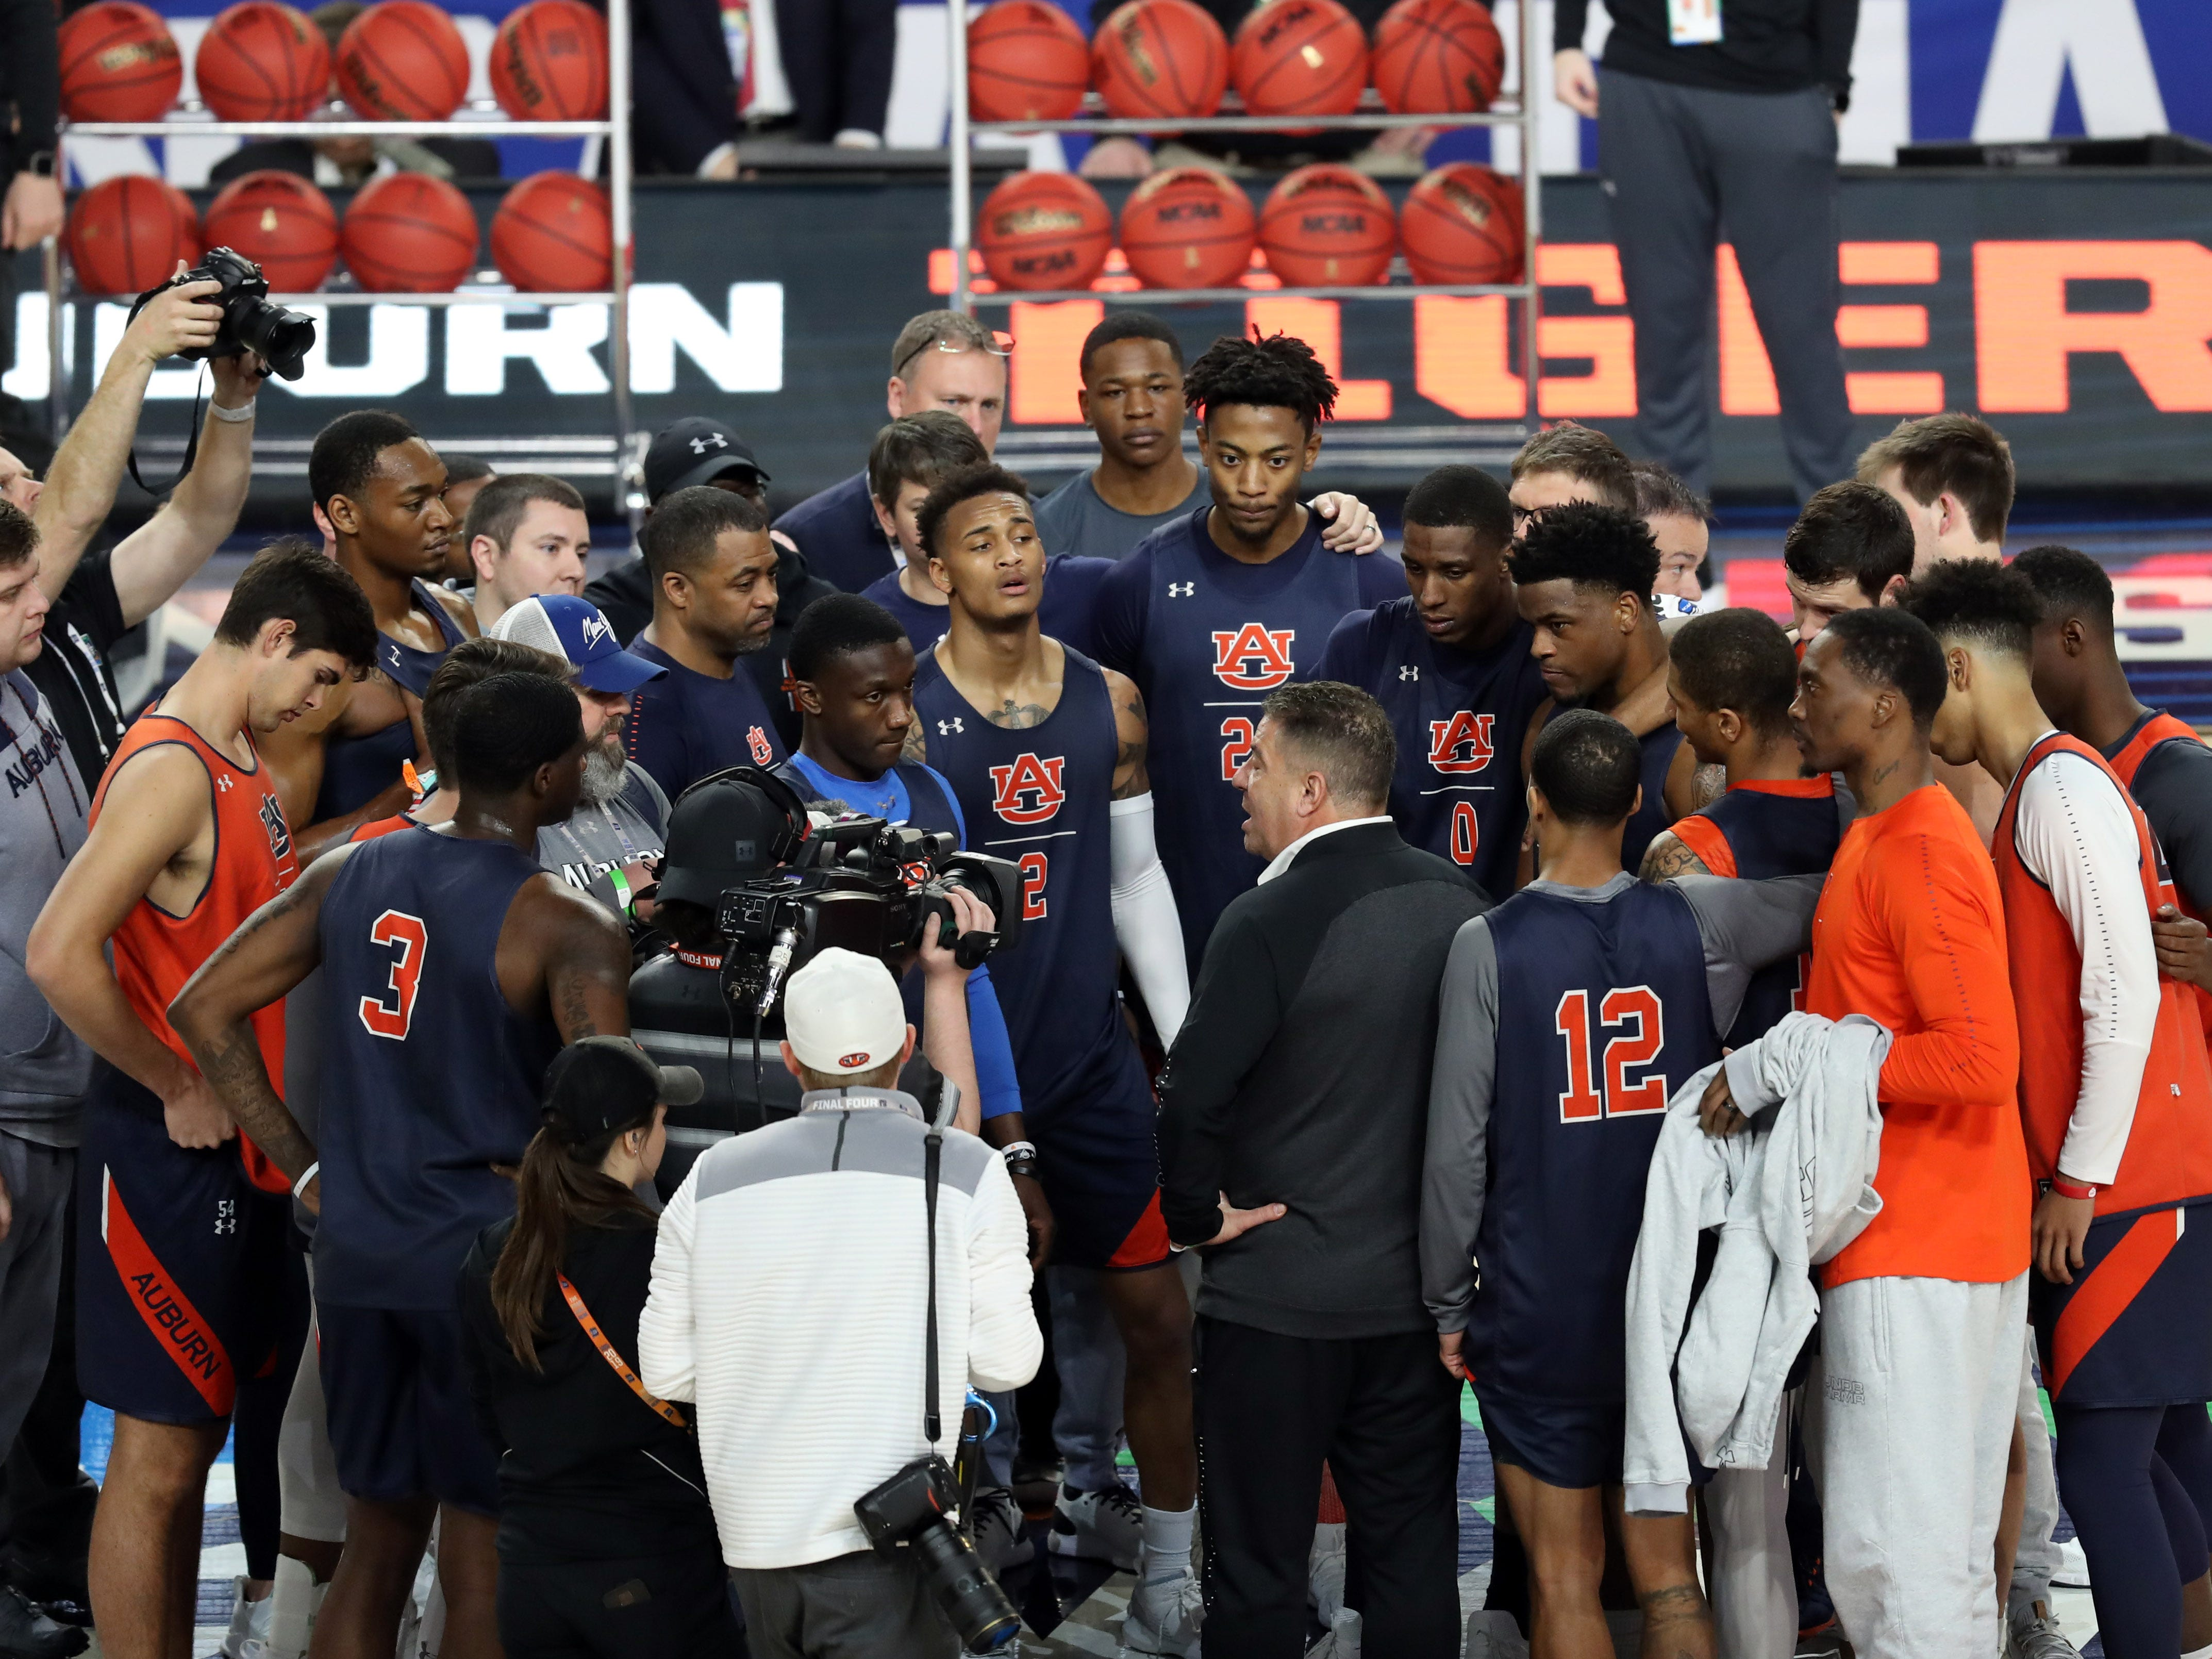 Auburn coach Bruce Pearl (center) speaks to his team during practice before the Final Four at U.S. Bank Stadium on Friday, April 5, 2019, in Minneapolis.